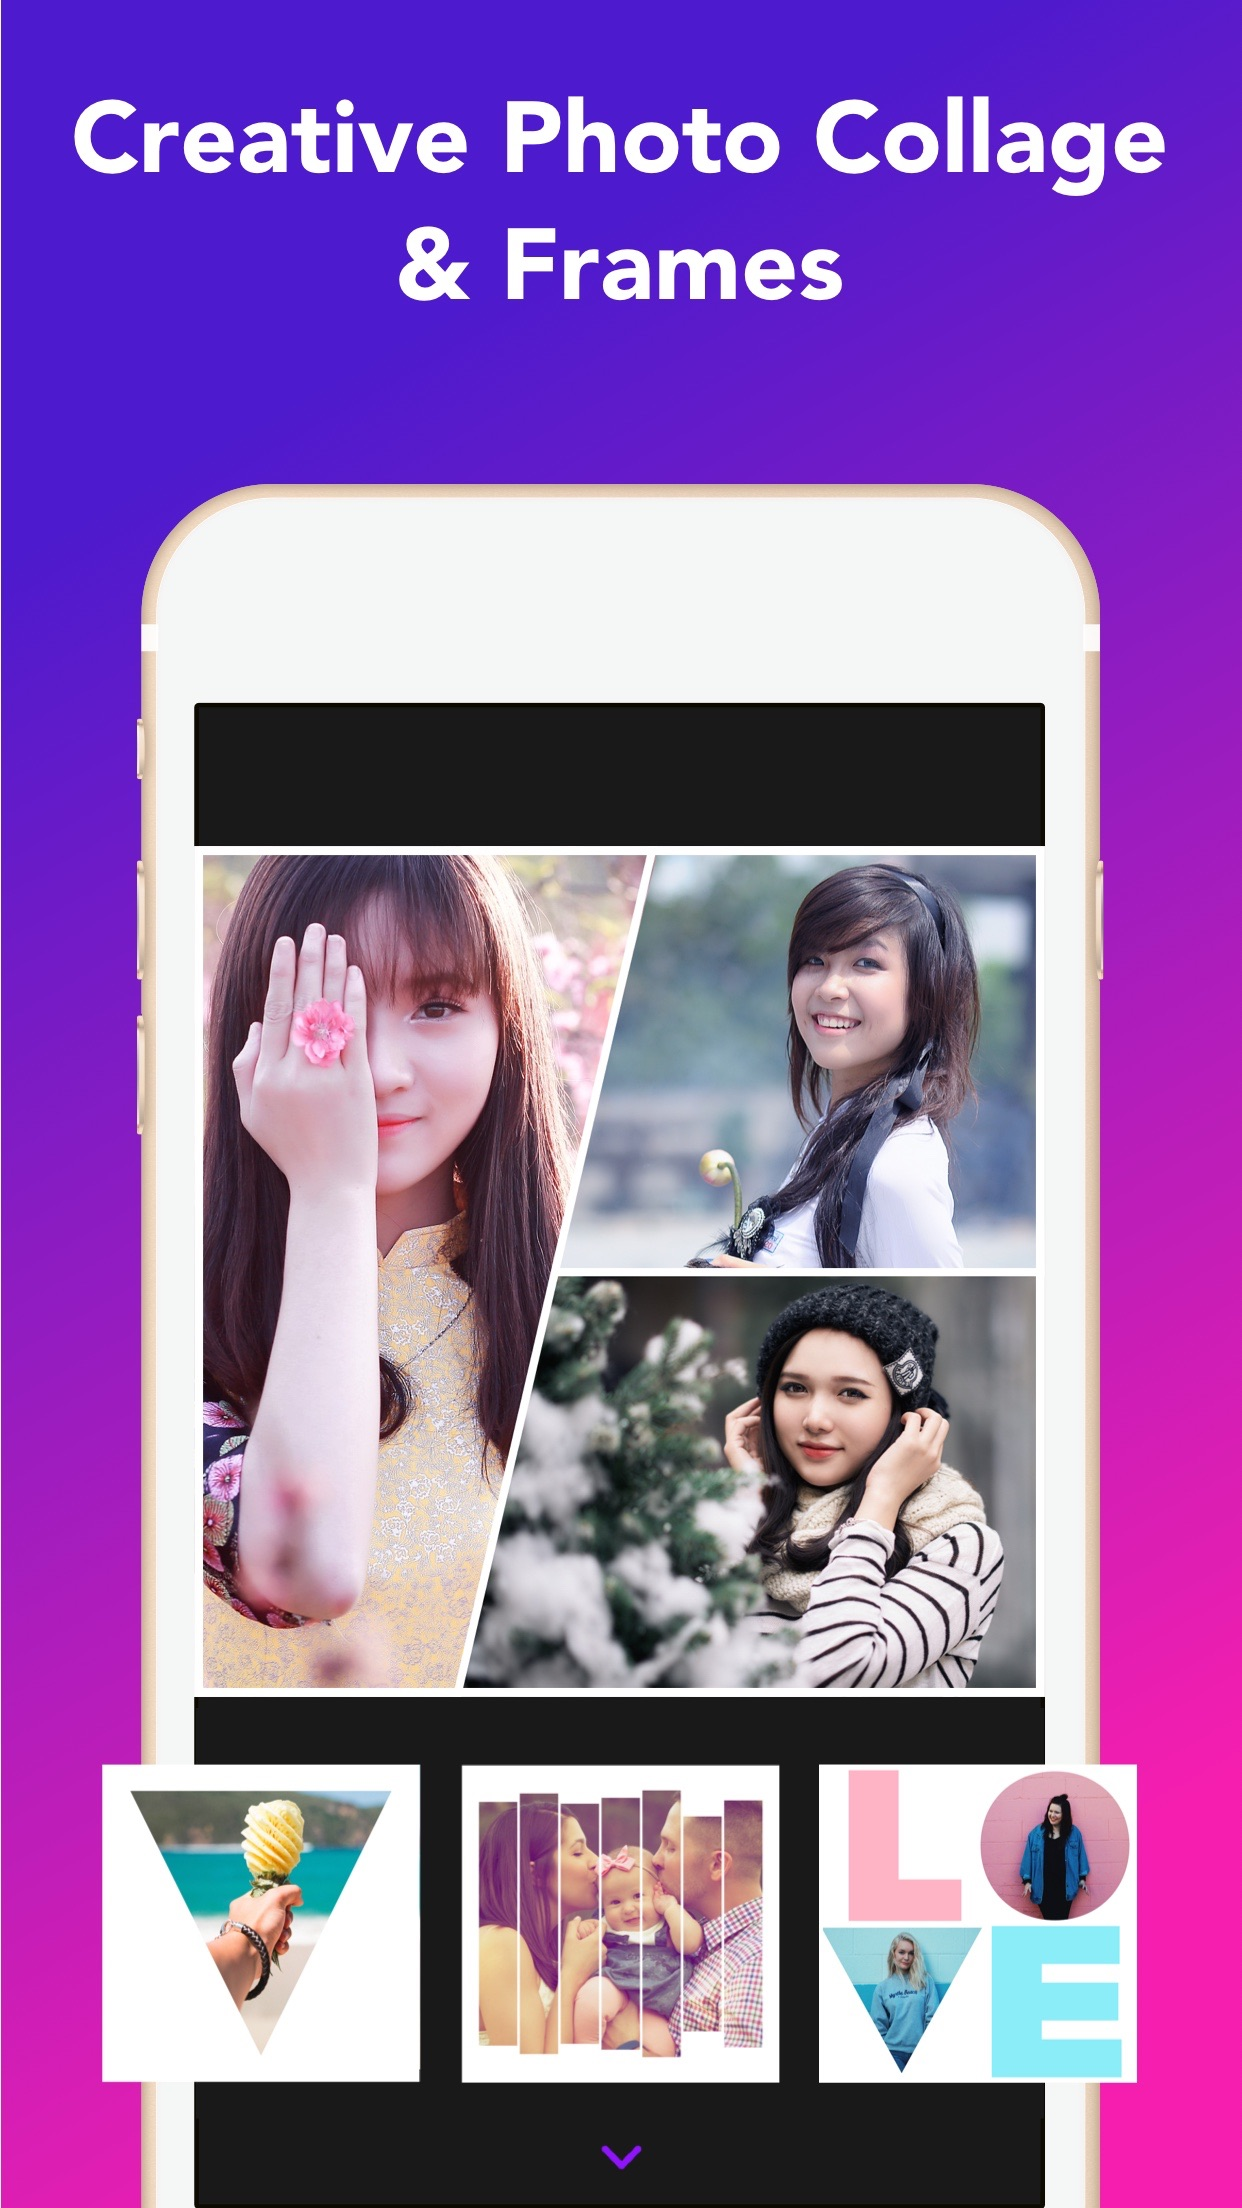 PICFY Square Fit Photo & Video Screenshot